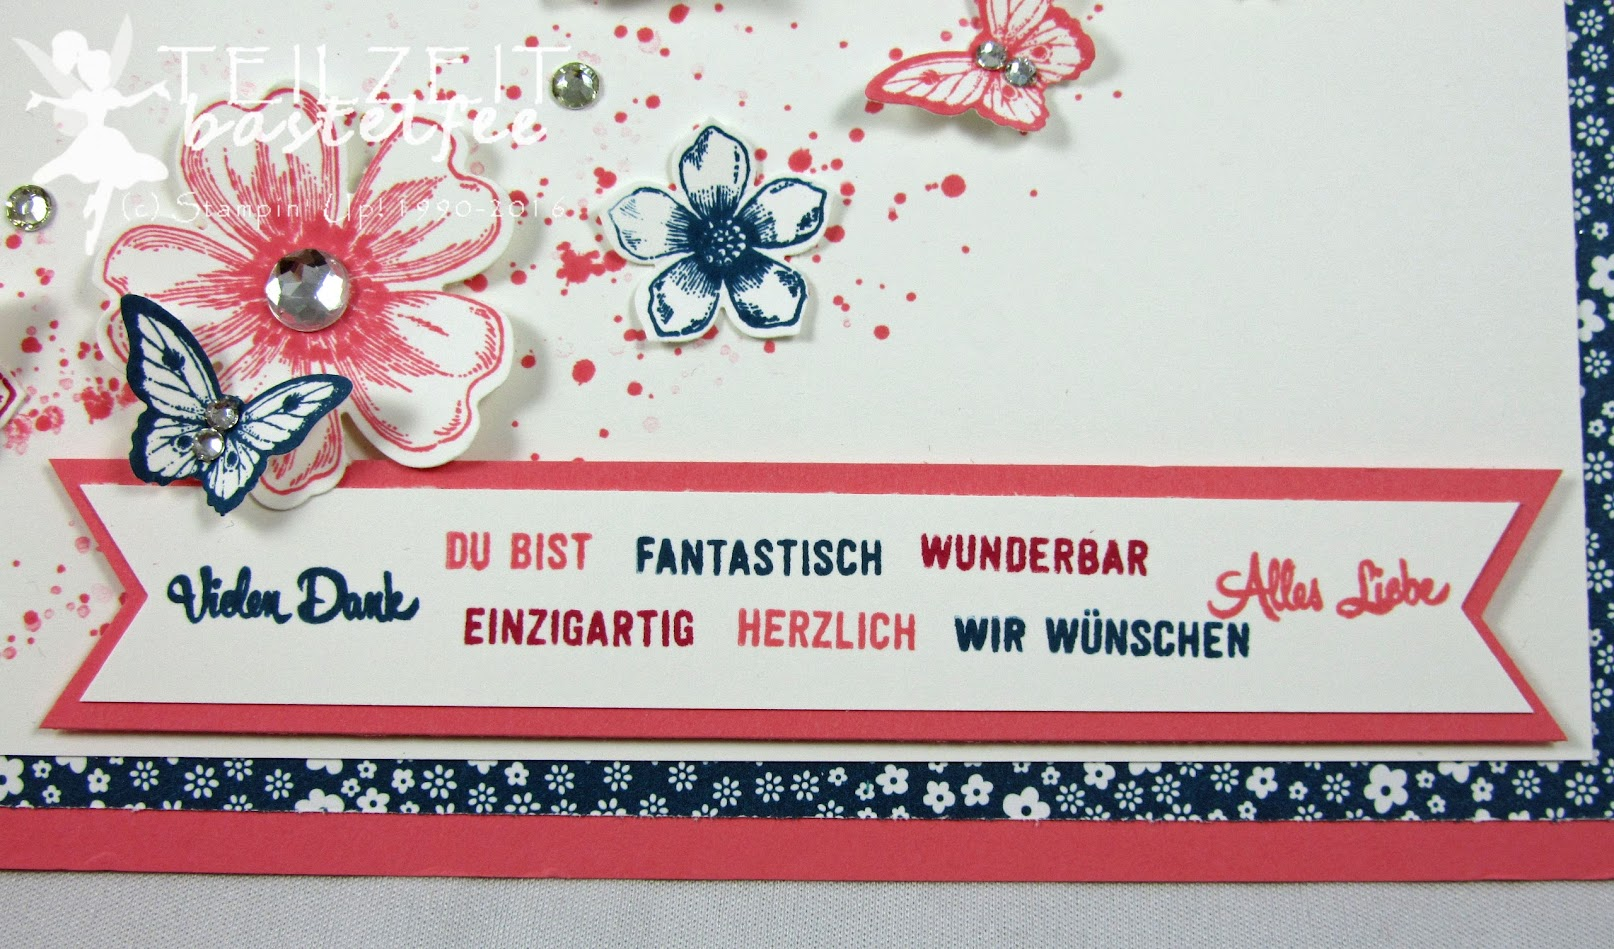 Stampin' Up! – InColors, Abschied, Good Bye, Petite Petals, Flower Shop, Bannerweise Grüße, Thoughtful Banners, Fähnchen, Banner, Papillon Potpourri, Gorgeous Grunge